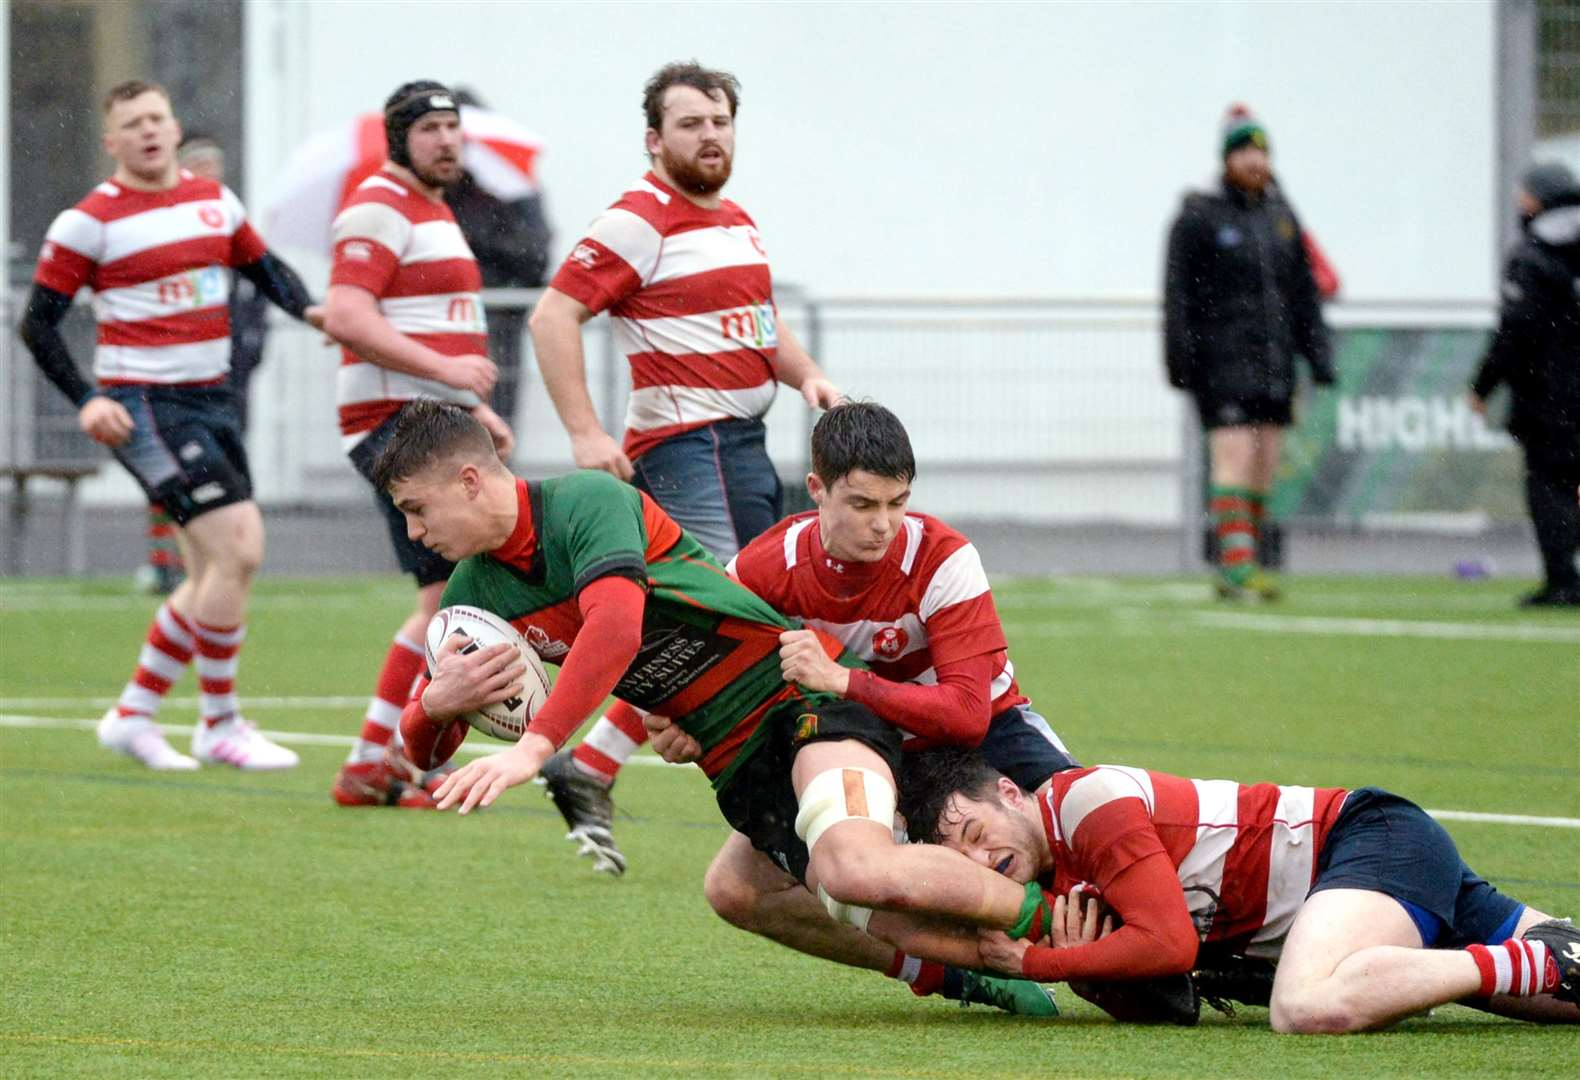 Highland Seconds put progress of the club first.